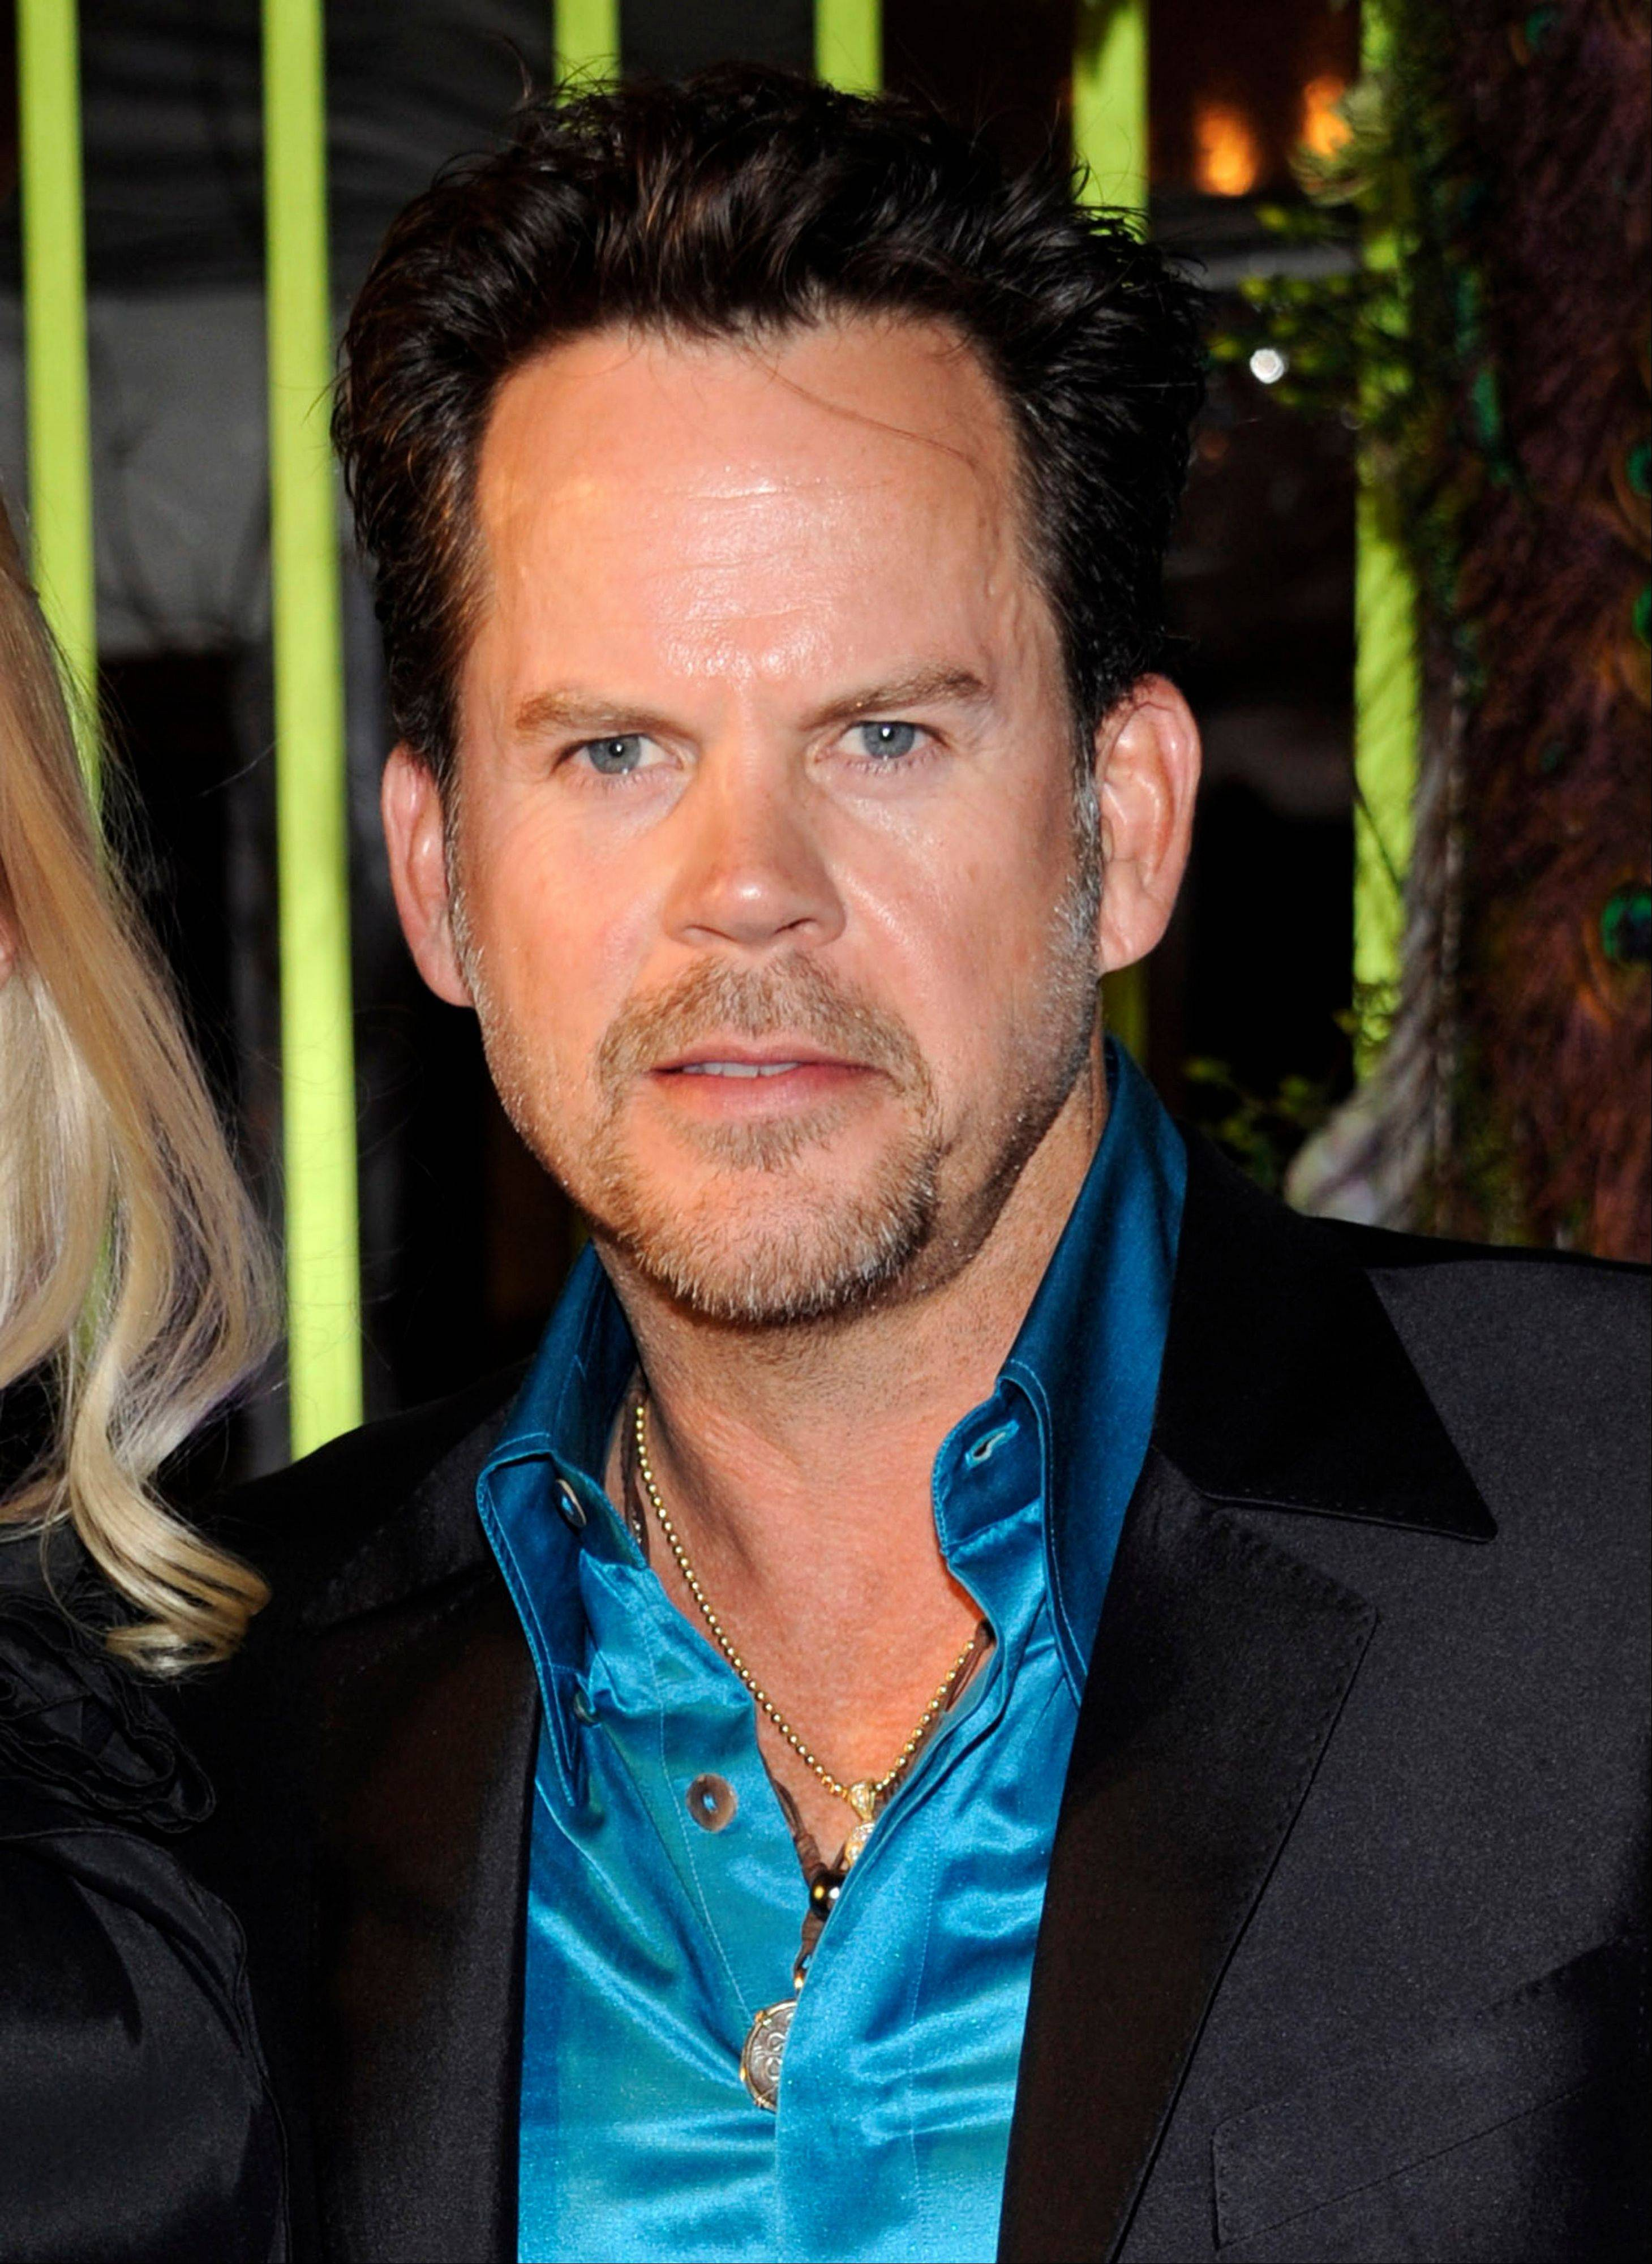 Fans can view the video for Gary Allan�s new single �Every Storm (Runs Out of Rain)� on the country singer�s website beginning Tuesday. The player gives fans a chance to donate to the Red Cross. In return, donors get a free download of the song from Allan�s untitled new album due out next year.